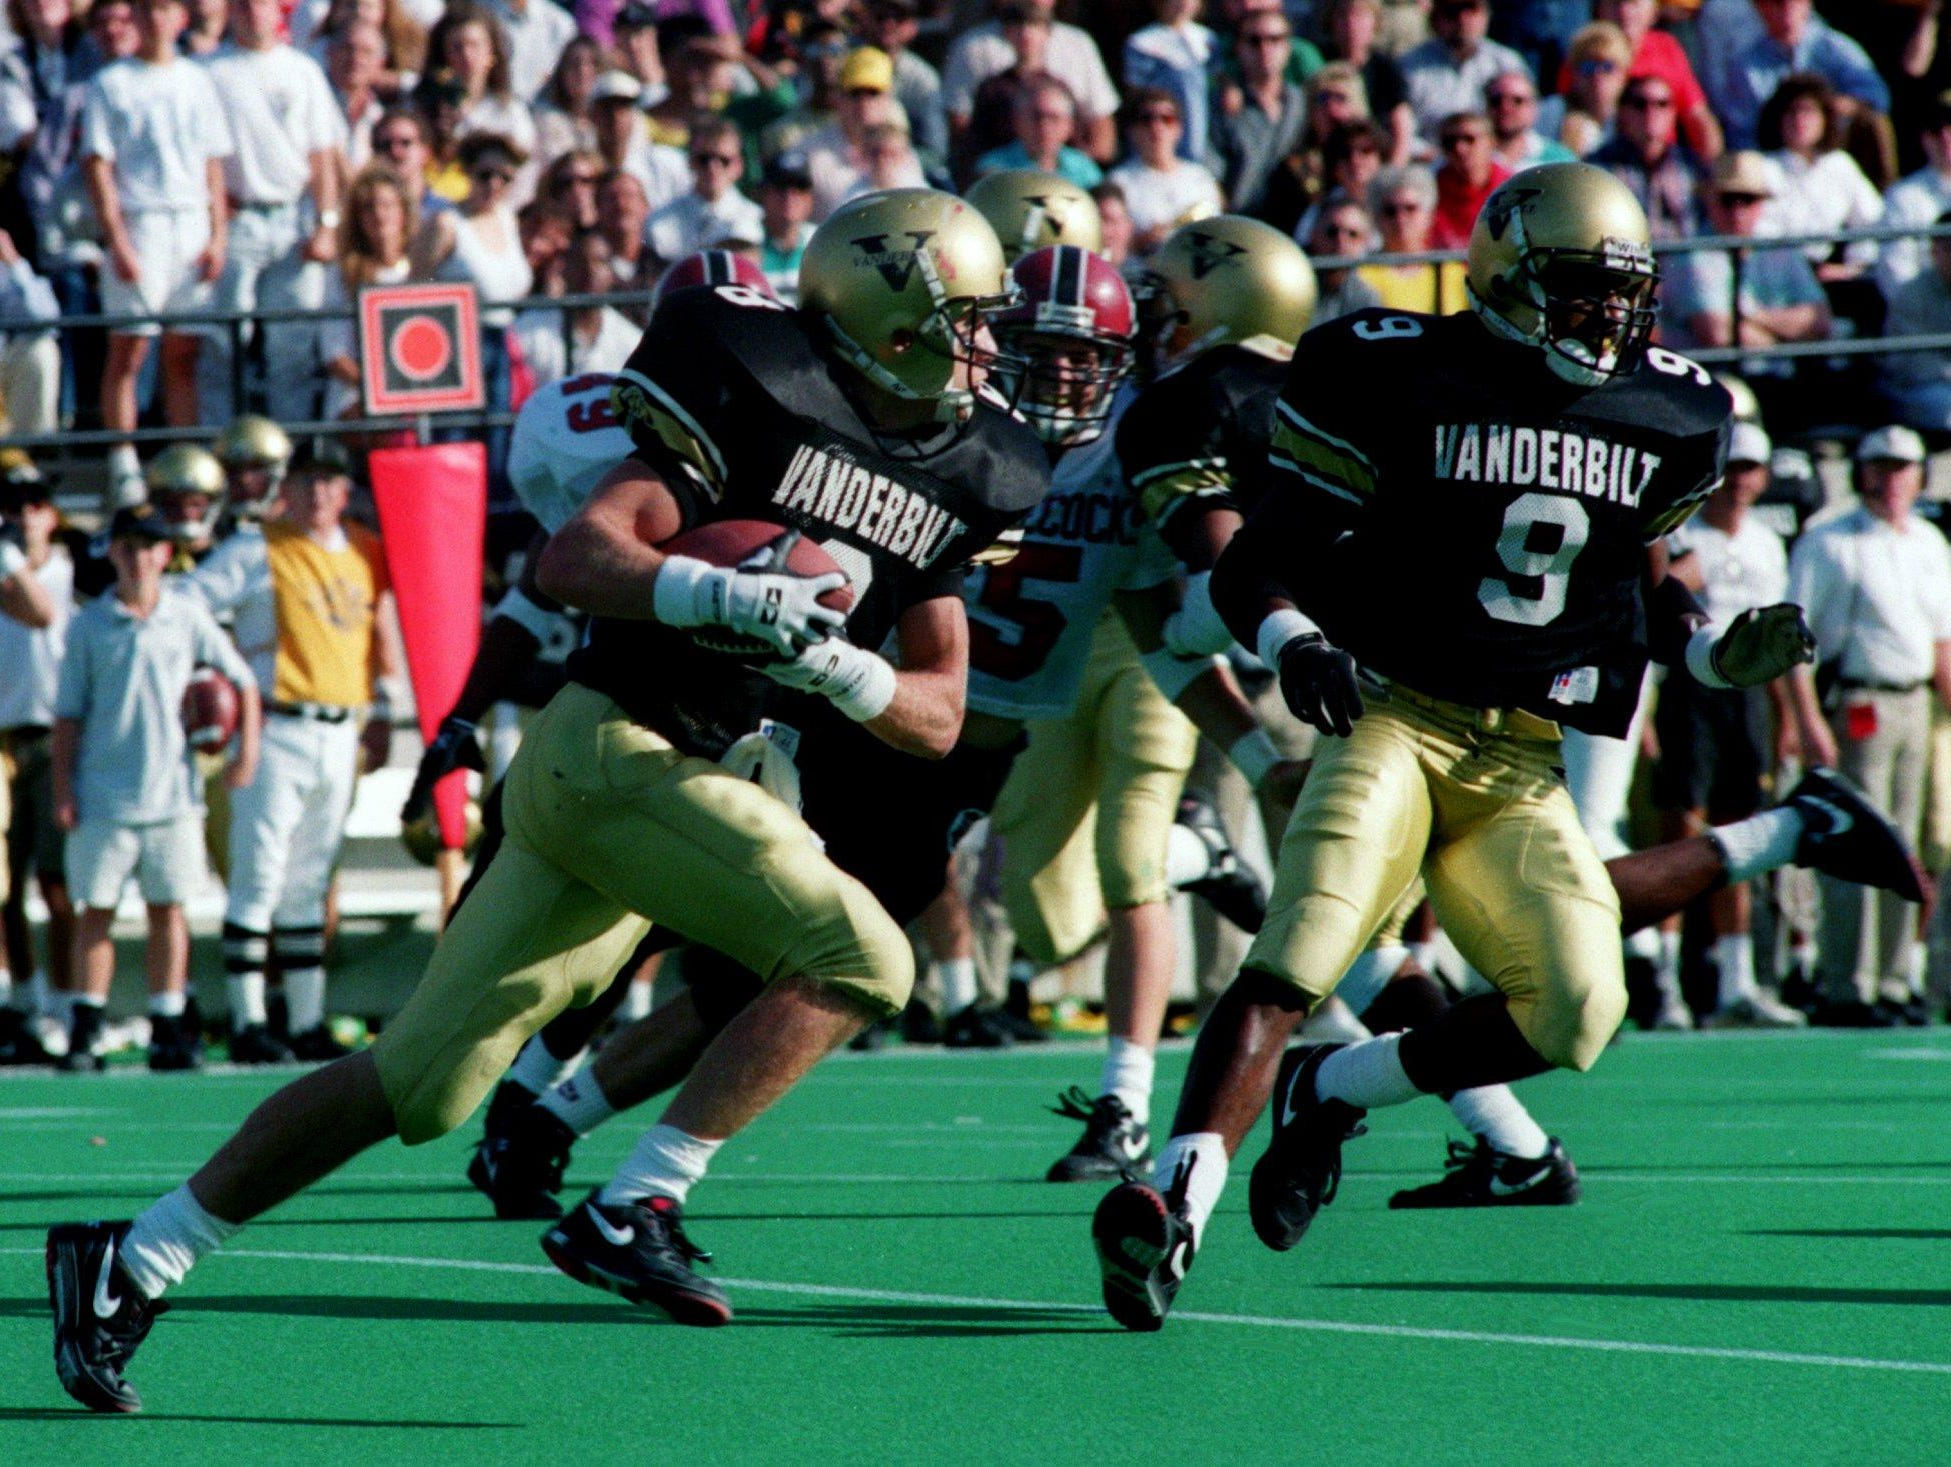 Vanderbilt's Jeff Brothers returns a kick during a 1992 game. Brothers, a former college quarterback, will lead his Nashville Christian squad in the 1A state title game Friday.